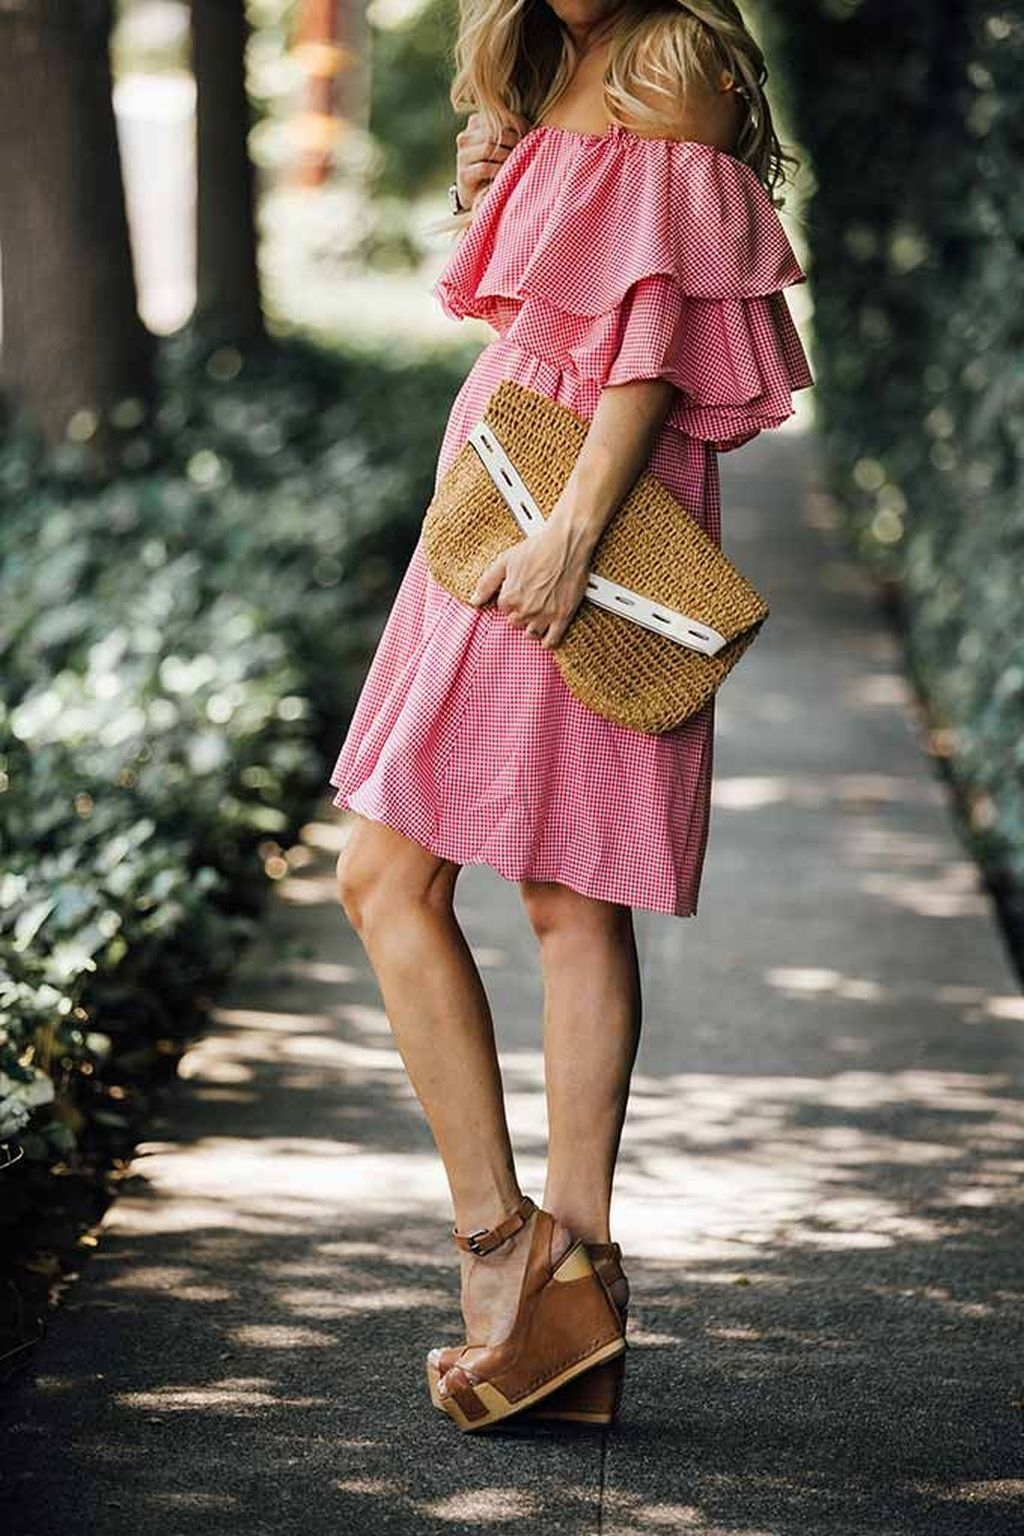 Stunning Spring Outfit Ideas With Wedges